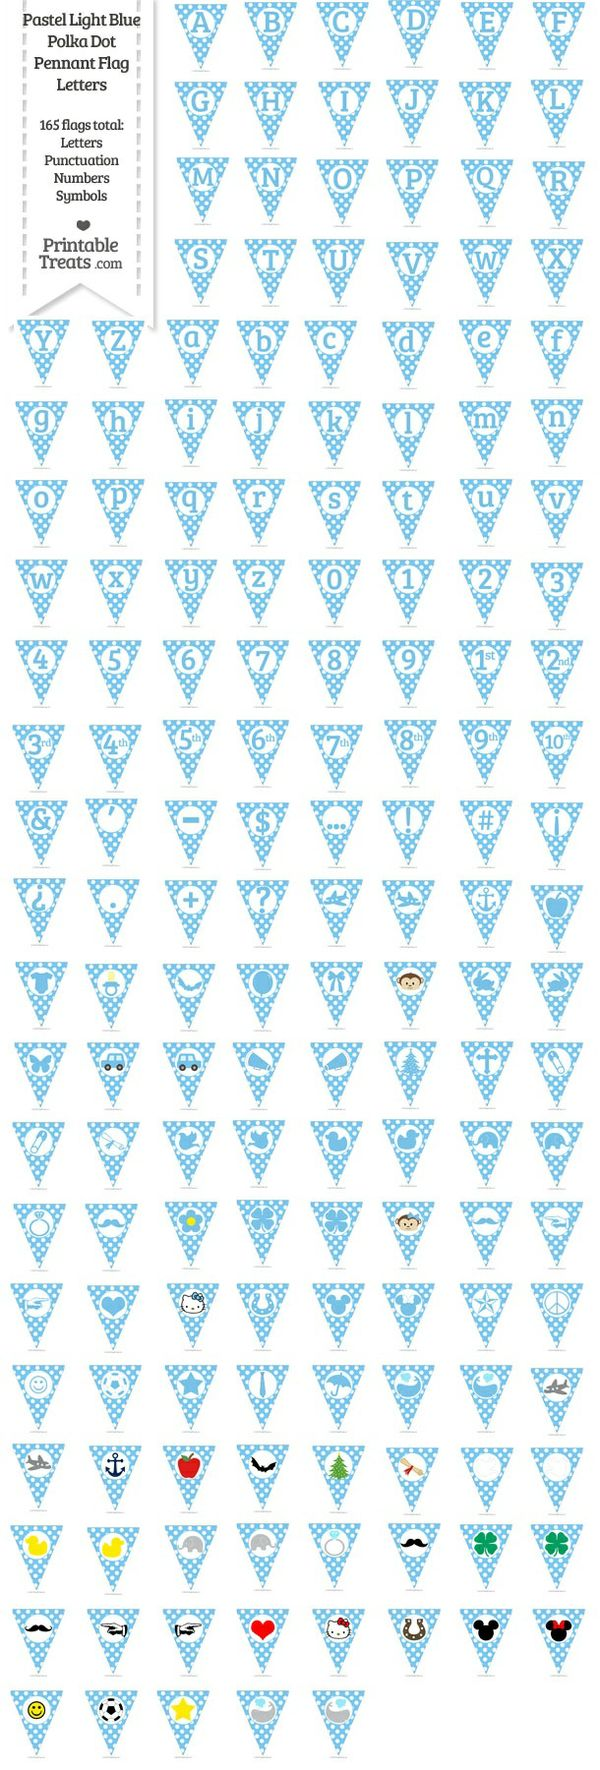 165 Pastel Light Blue Polka Dot Pennant Flag Letters Password